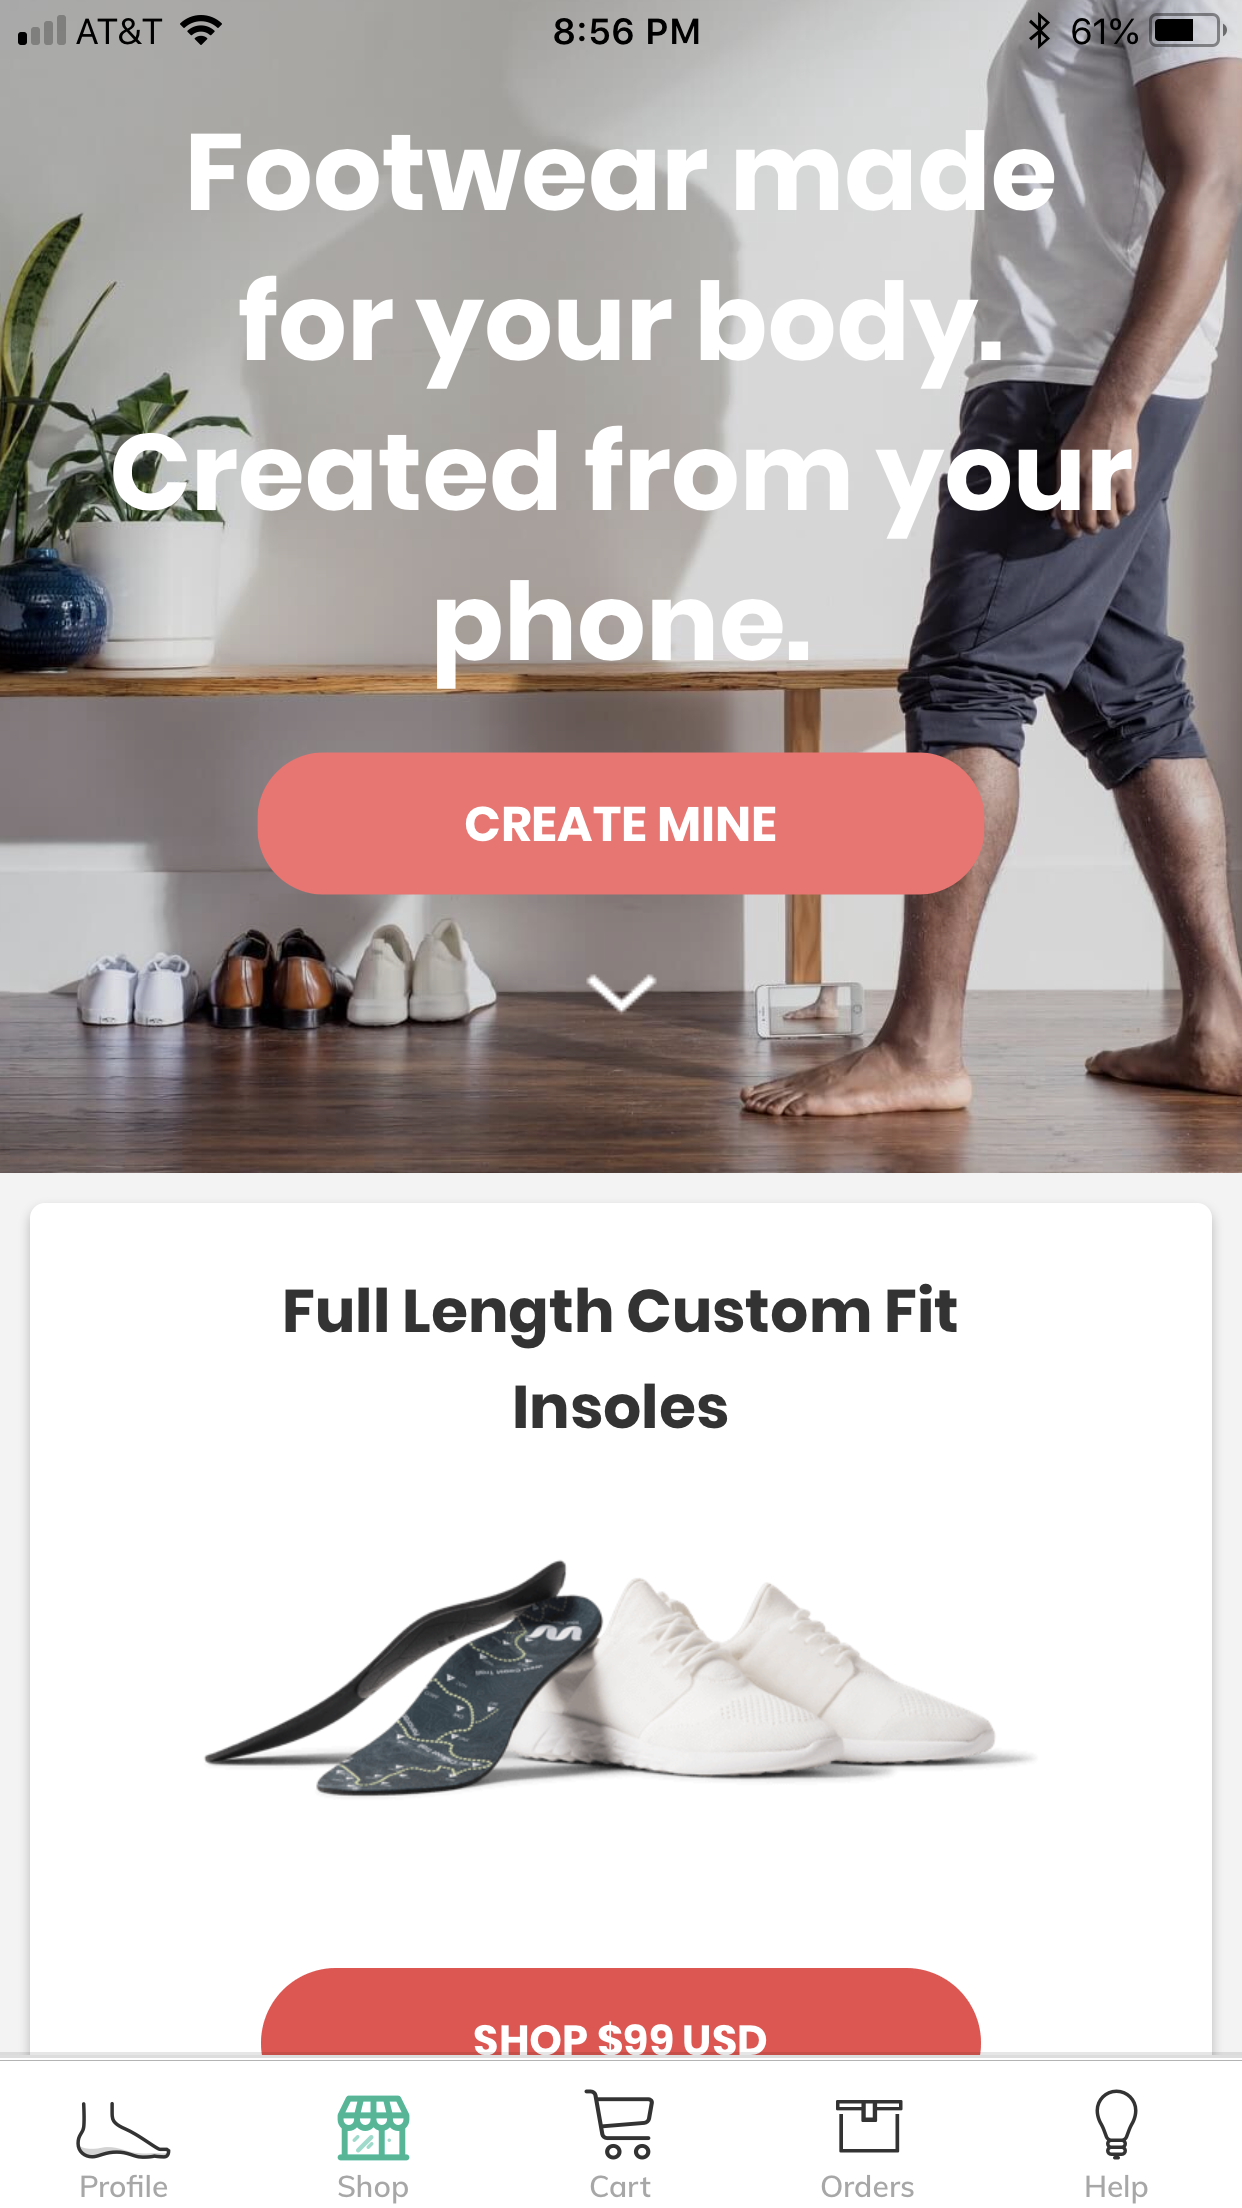 Looking to make your shoes more comfortable? Wanting to go that extra mile on your runs? Check out my full review of Wiivv custom insoles that are made to fit your feet perfectly.   Running   Shoes   Insoles   Comfort  